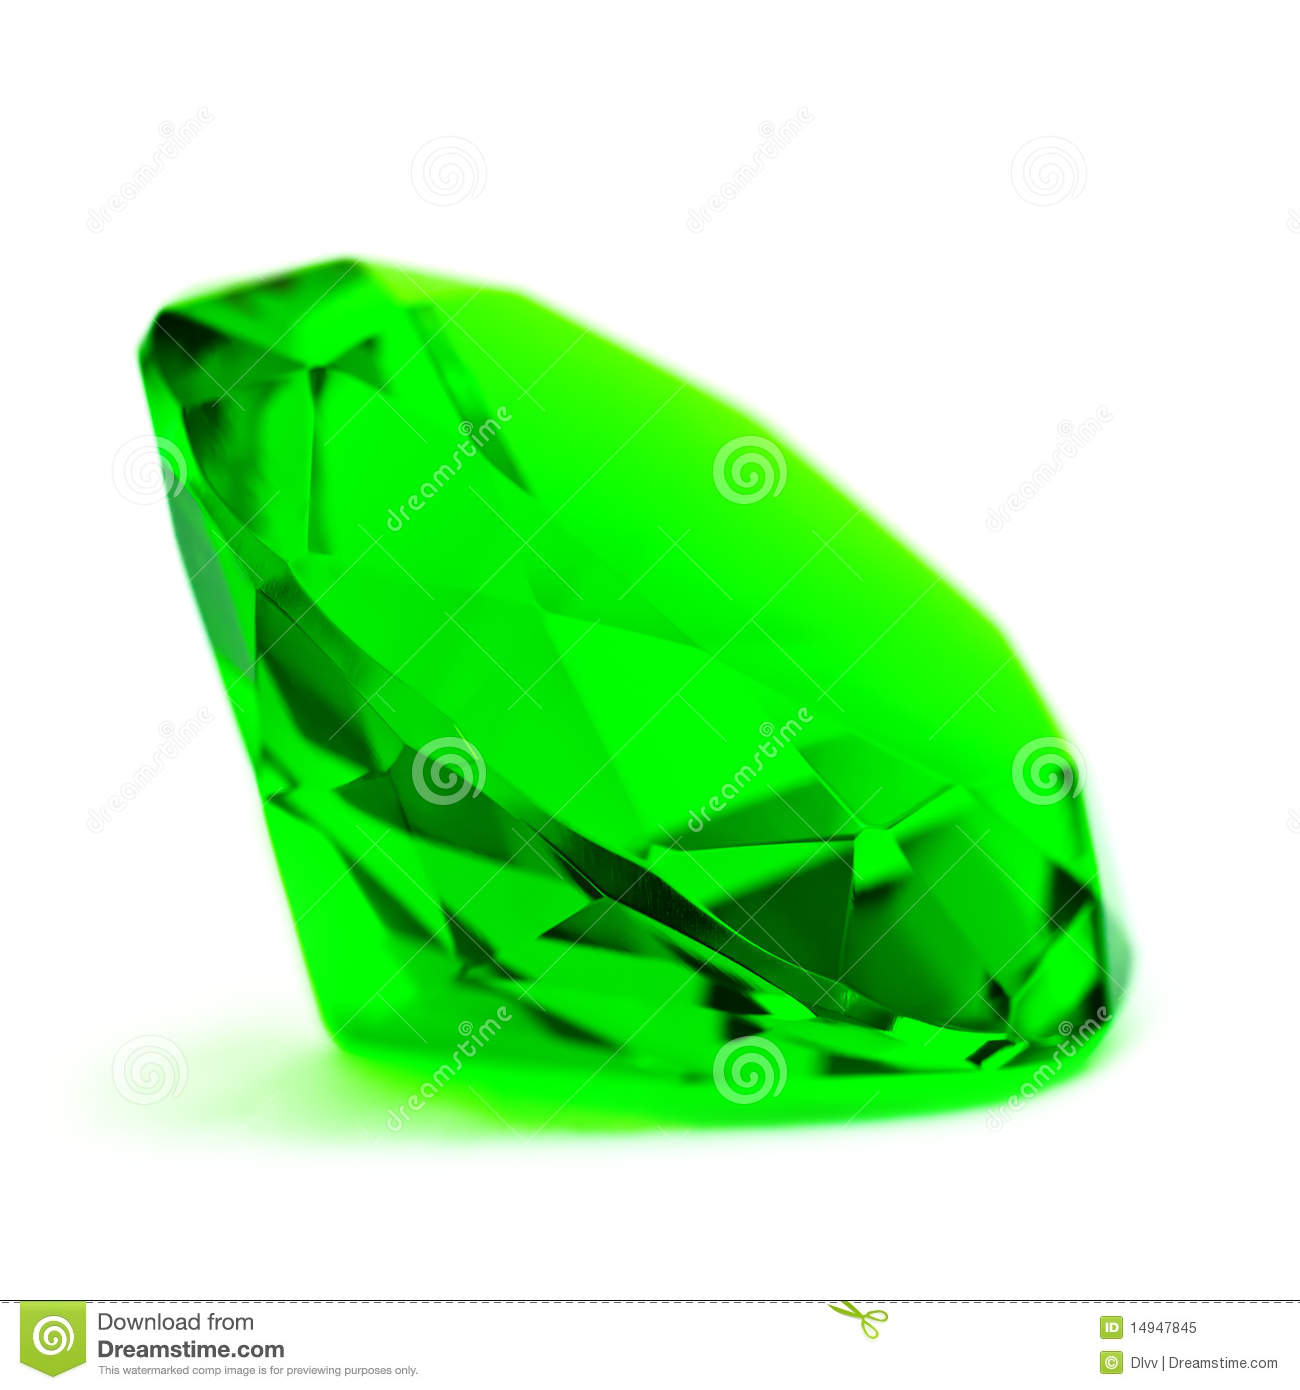 gemstone gemstones au sku carat colombia shape gubelin colombian emerald green